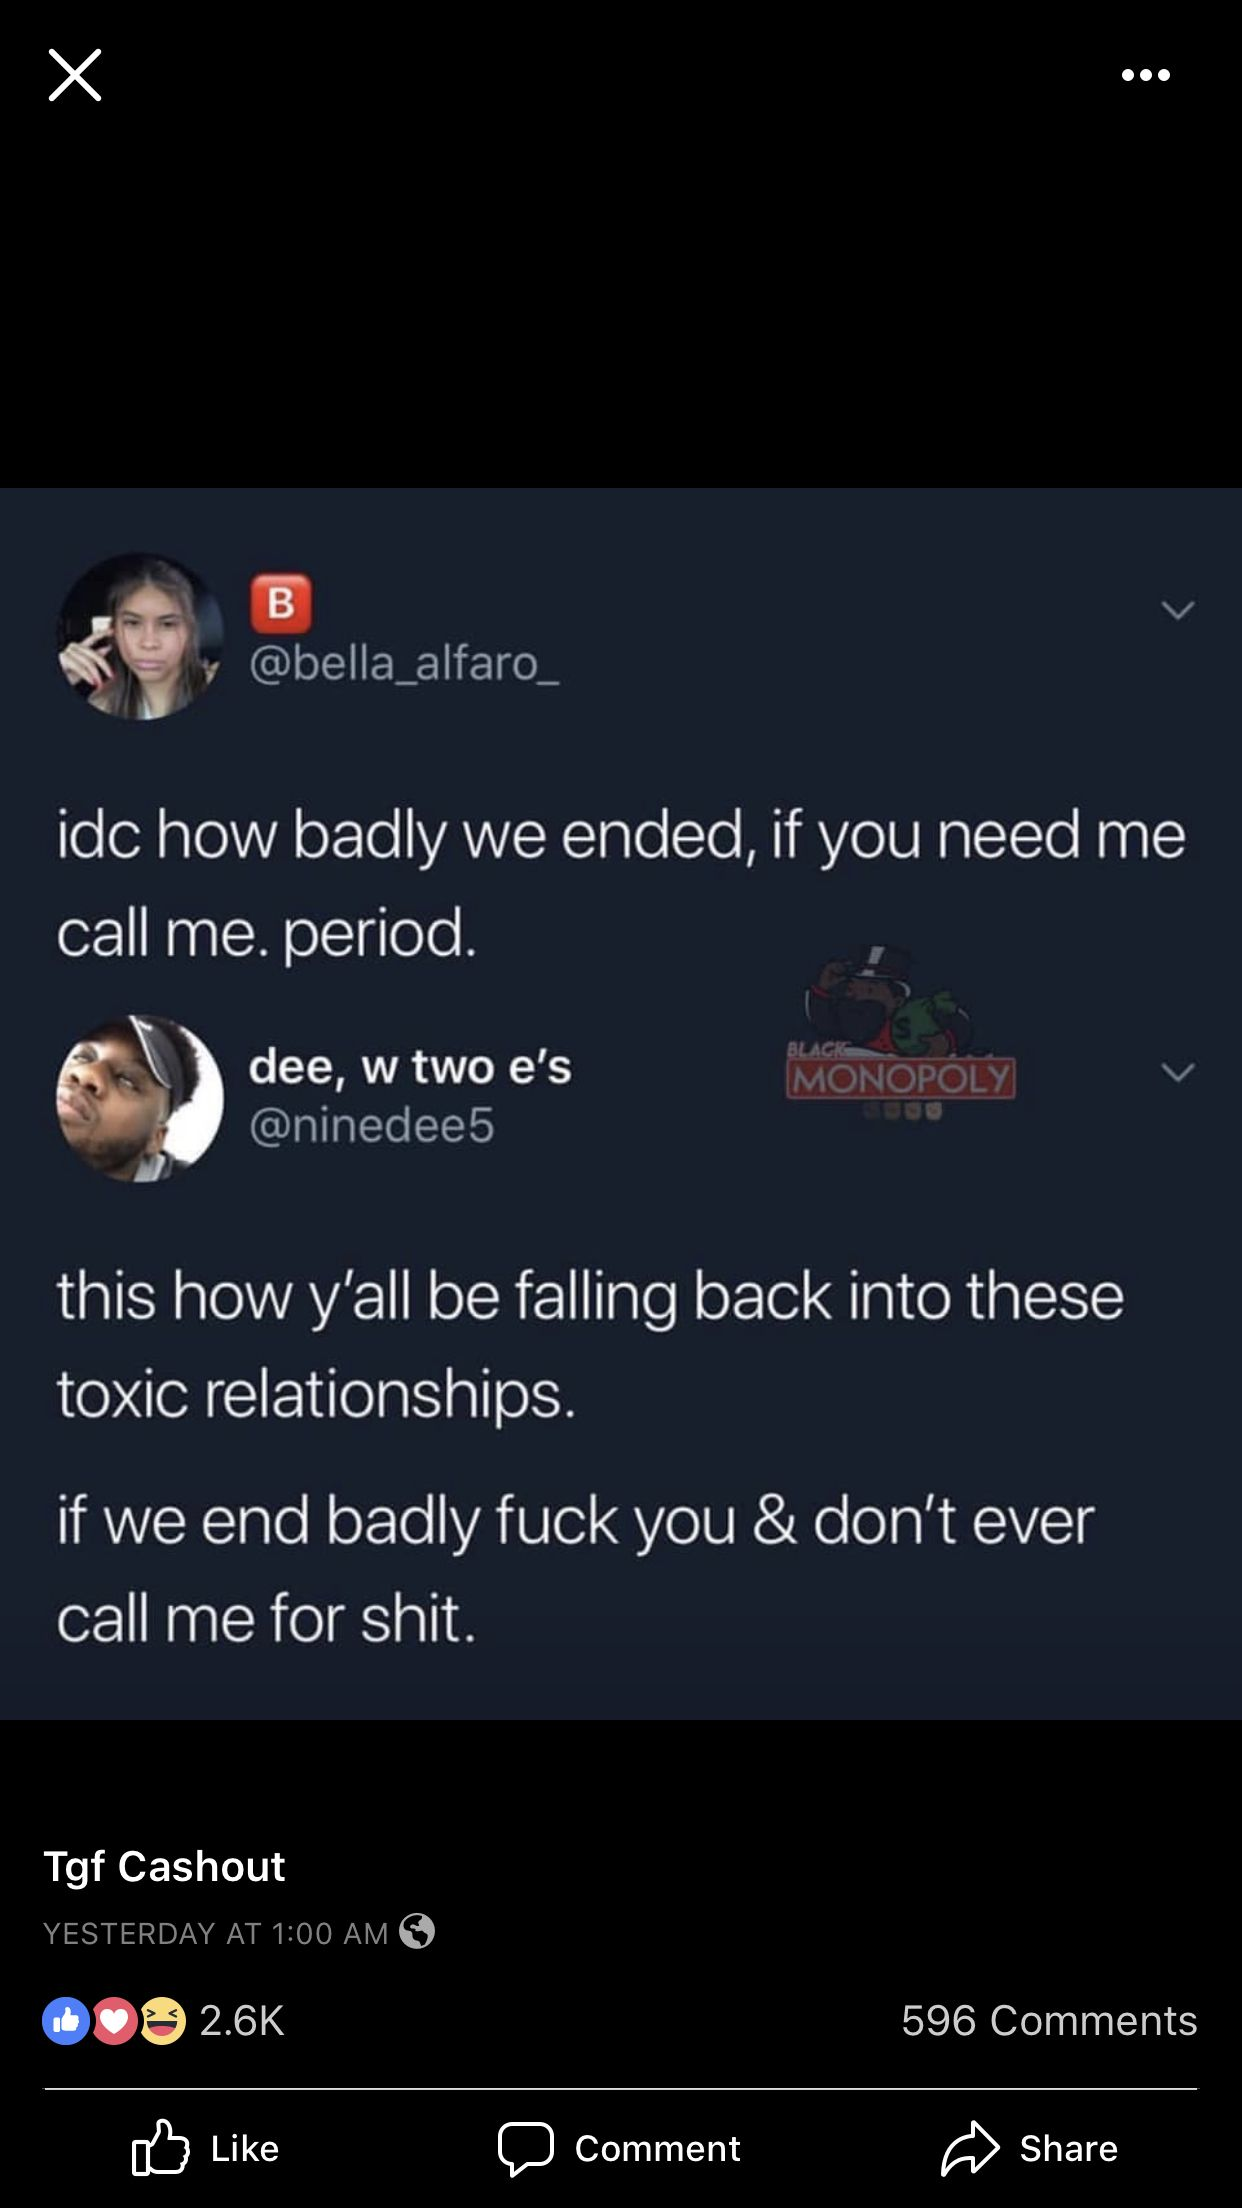 Pin By Bigcashcass On Twitter Couple Quotes Funny Funny Relationship Quotes Twitter Quotes Funny